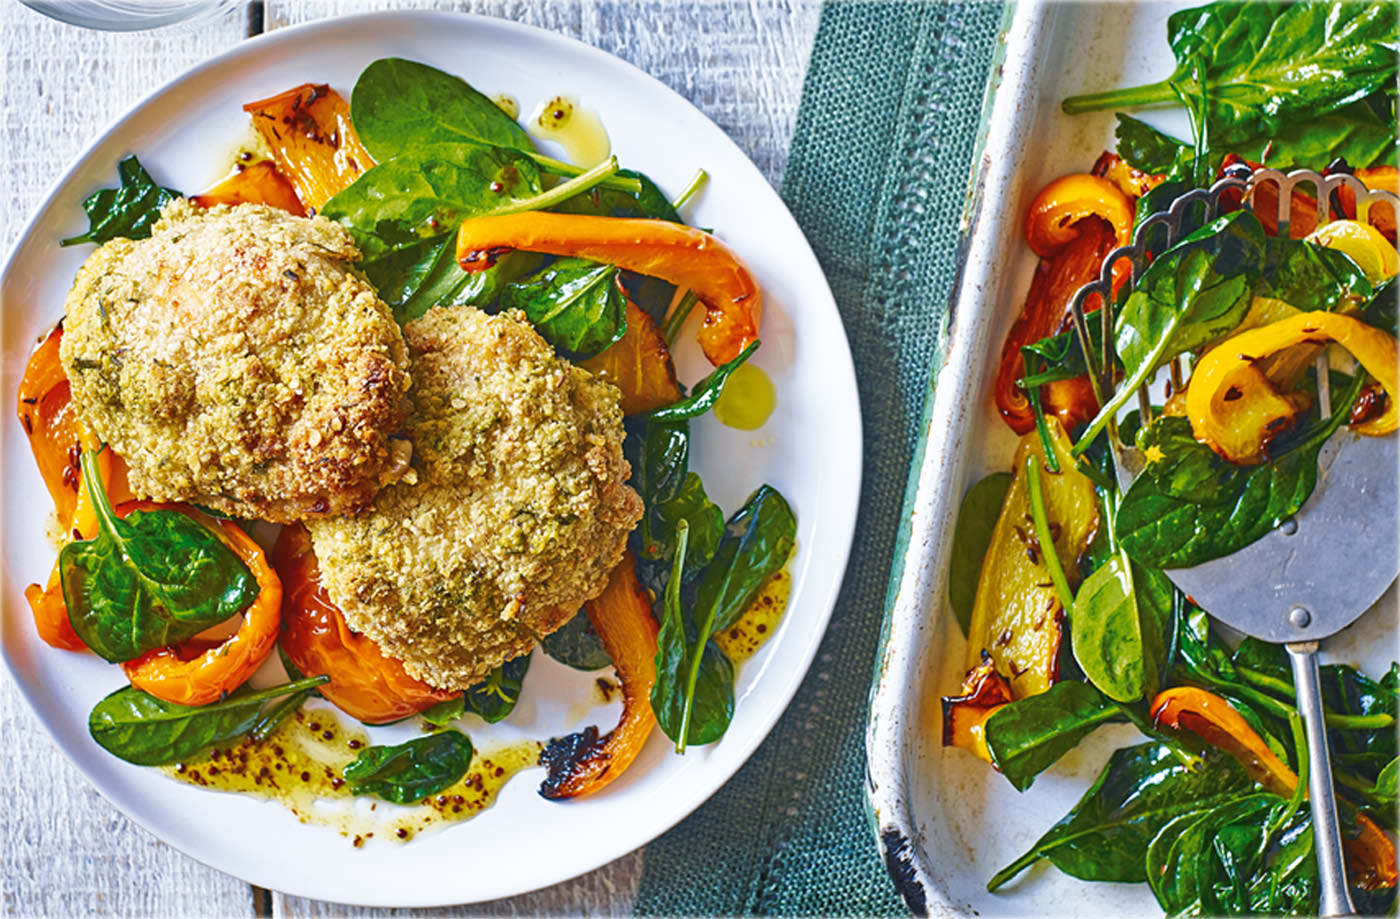 Oat and chive mushrooms with pepper and spinach salad recipe